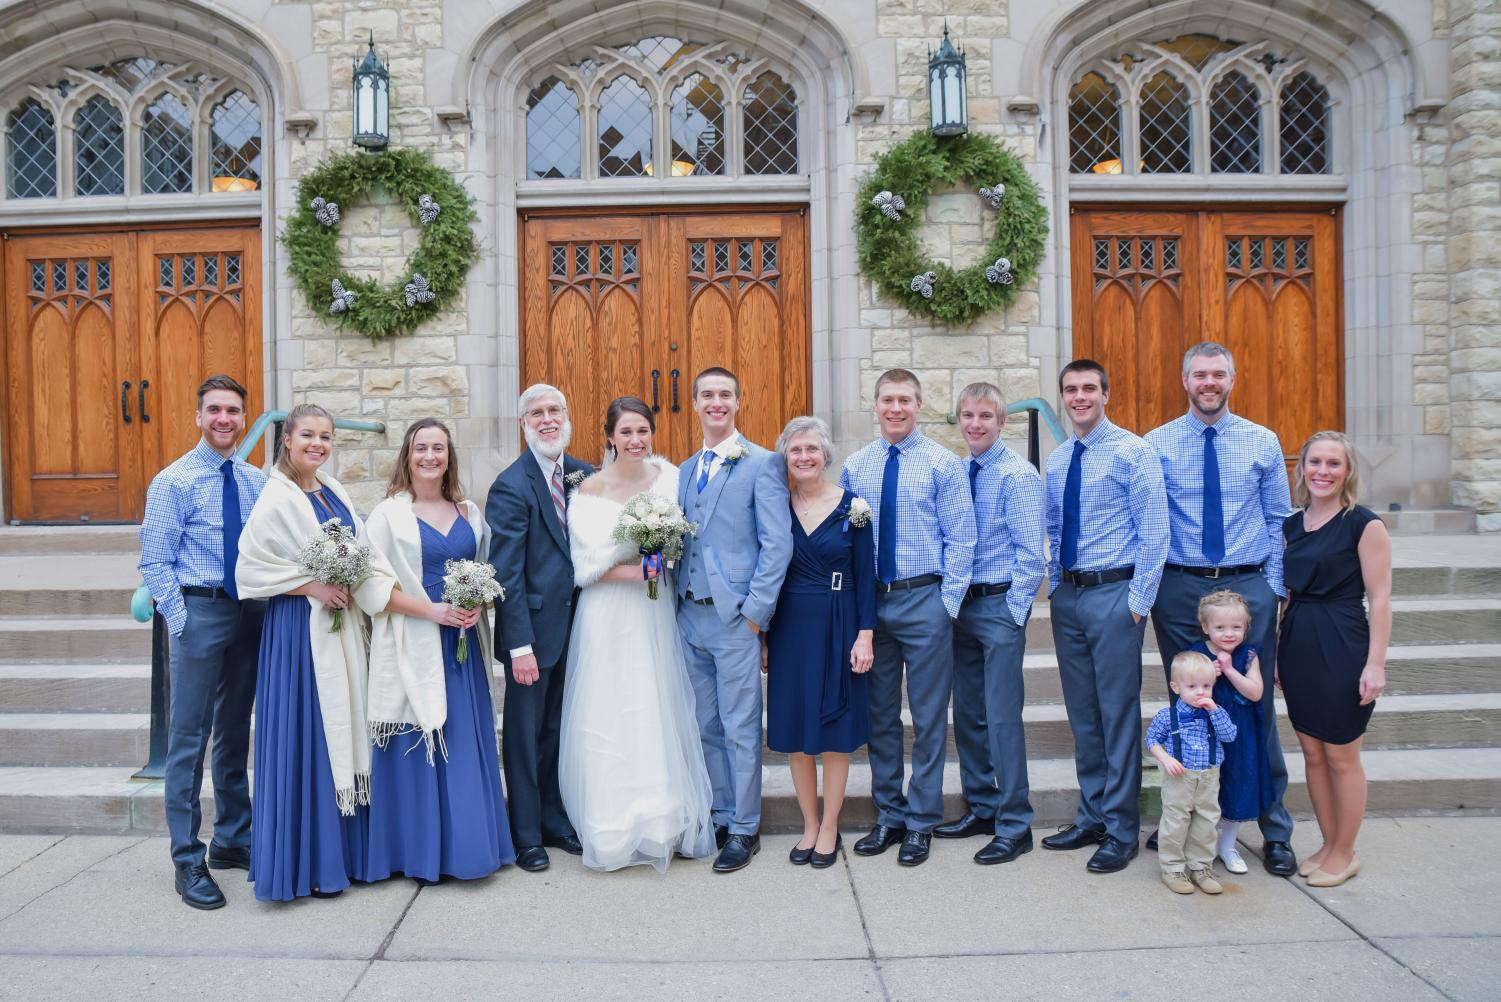 Kendra Klamm with her family at a sibling's wedding